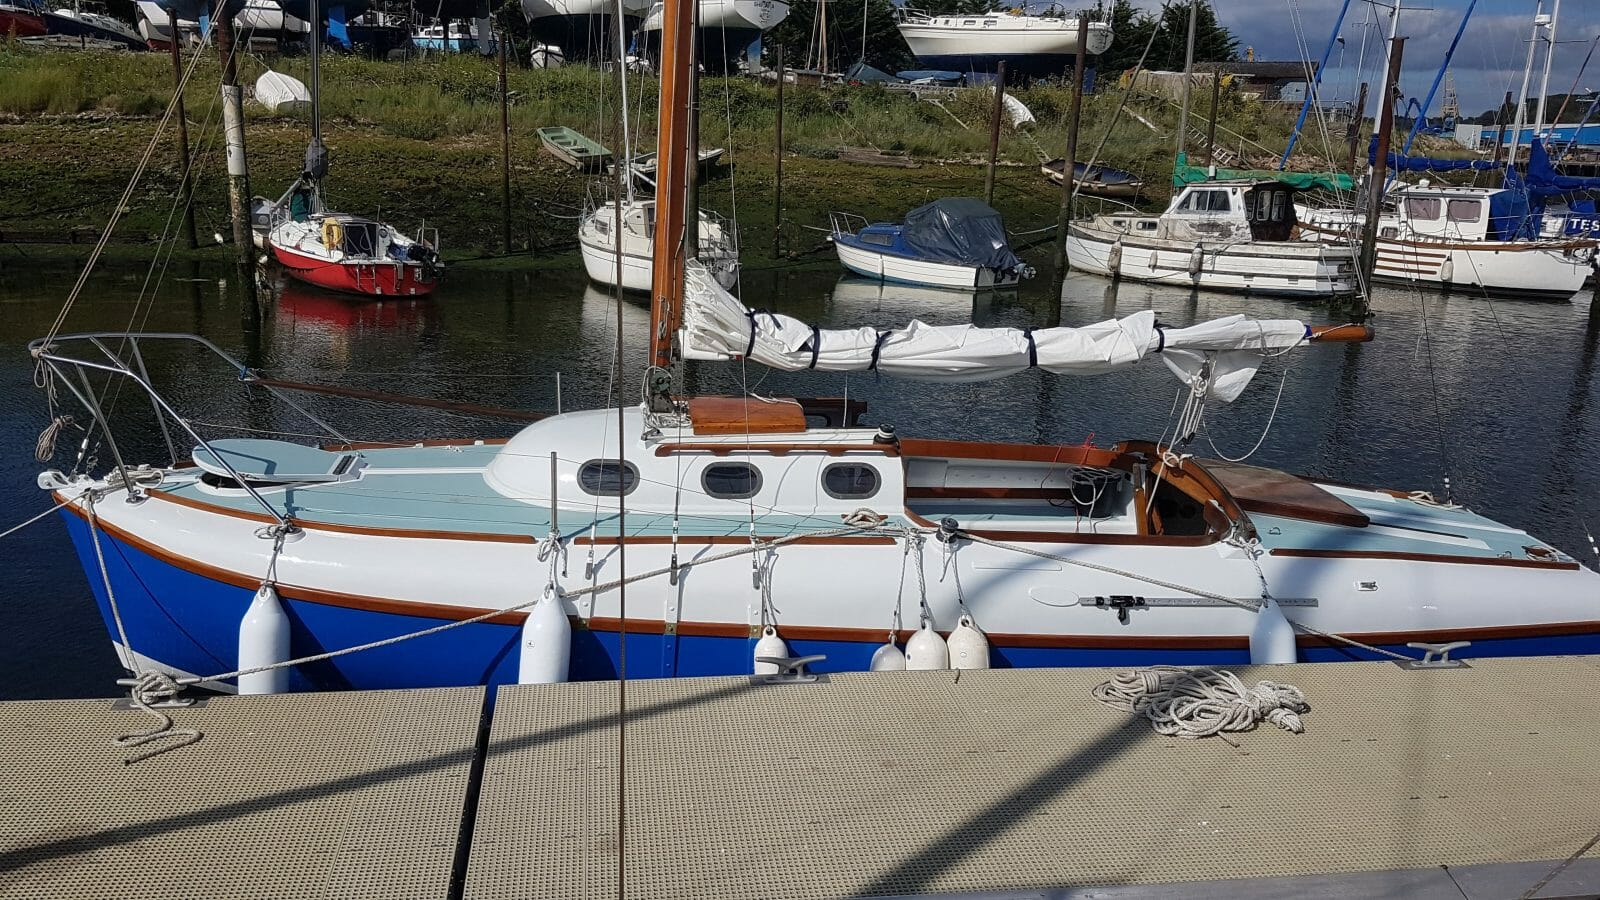 The hull and decks are in good, but not perfect, condition - port side